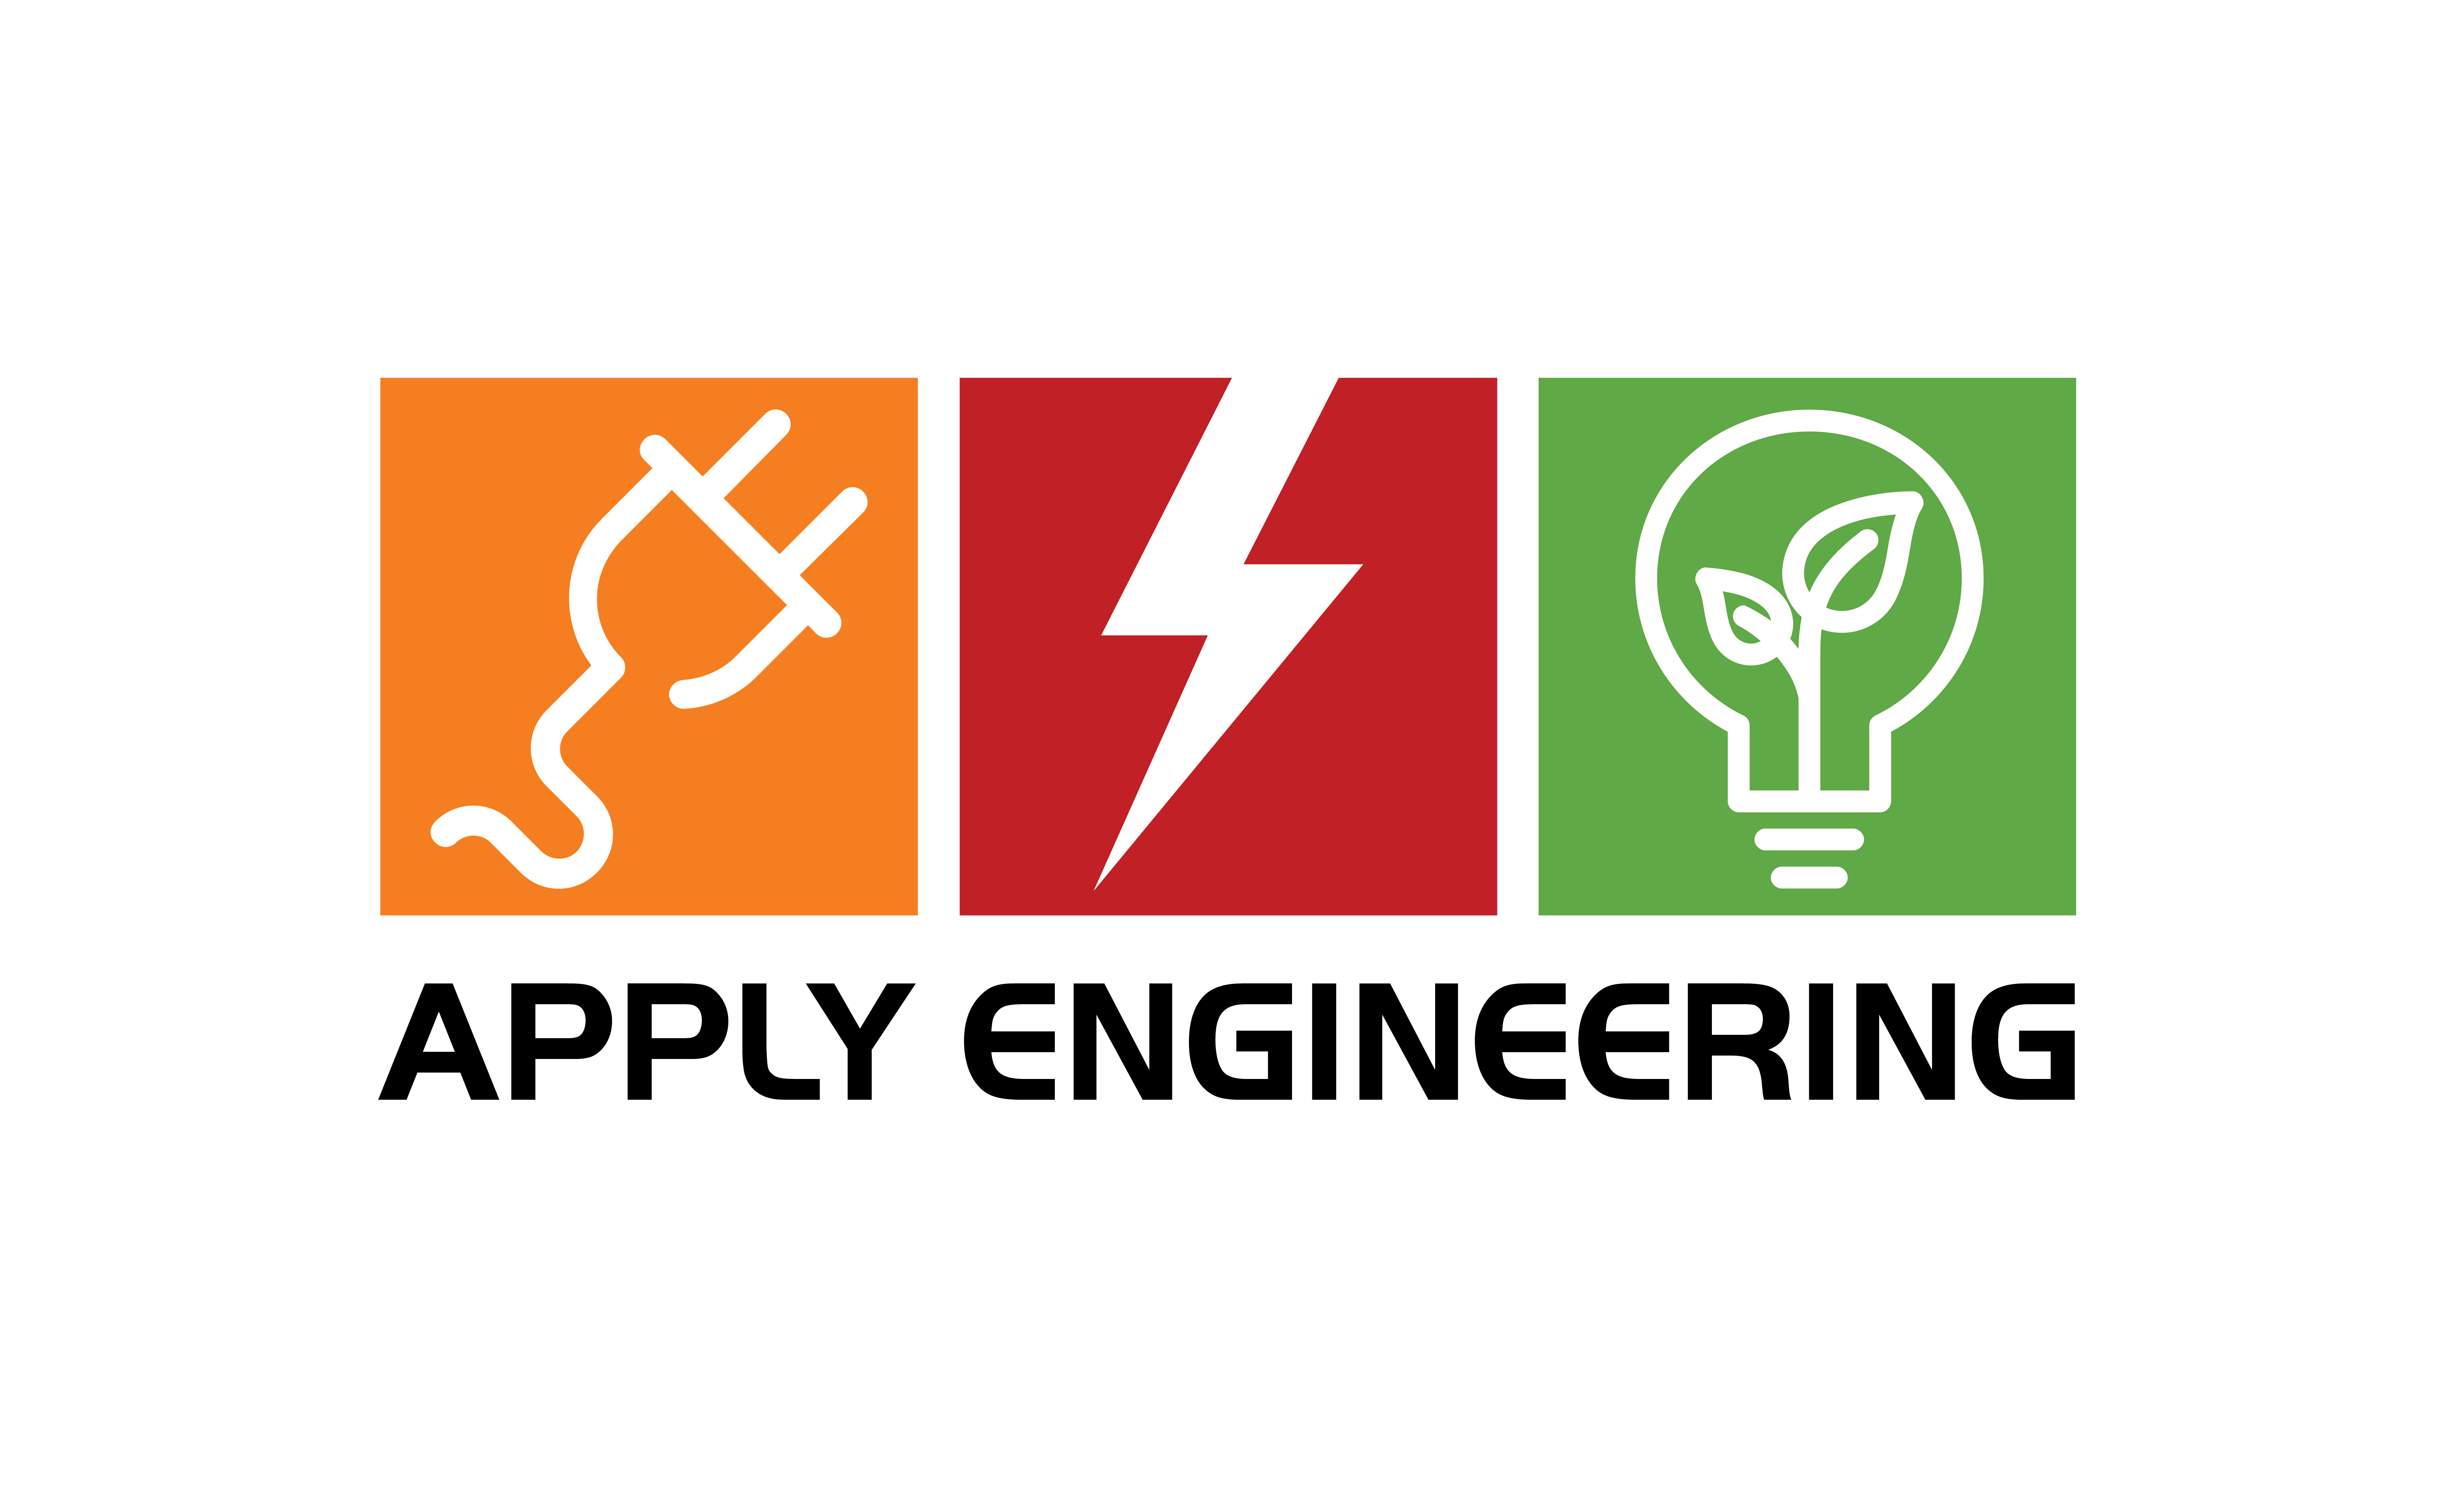 https://www.applyengineering.pl/